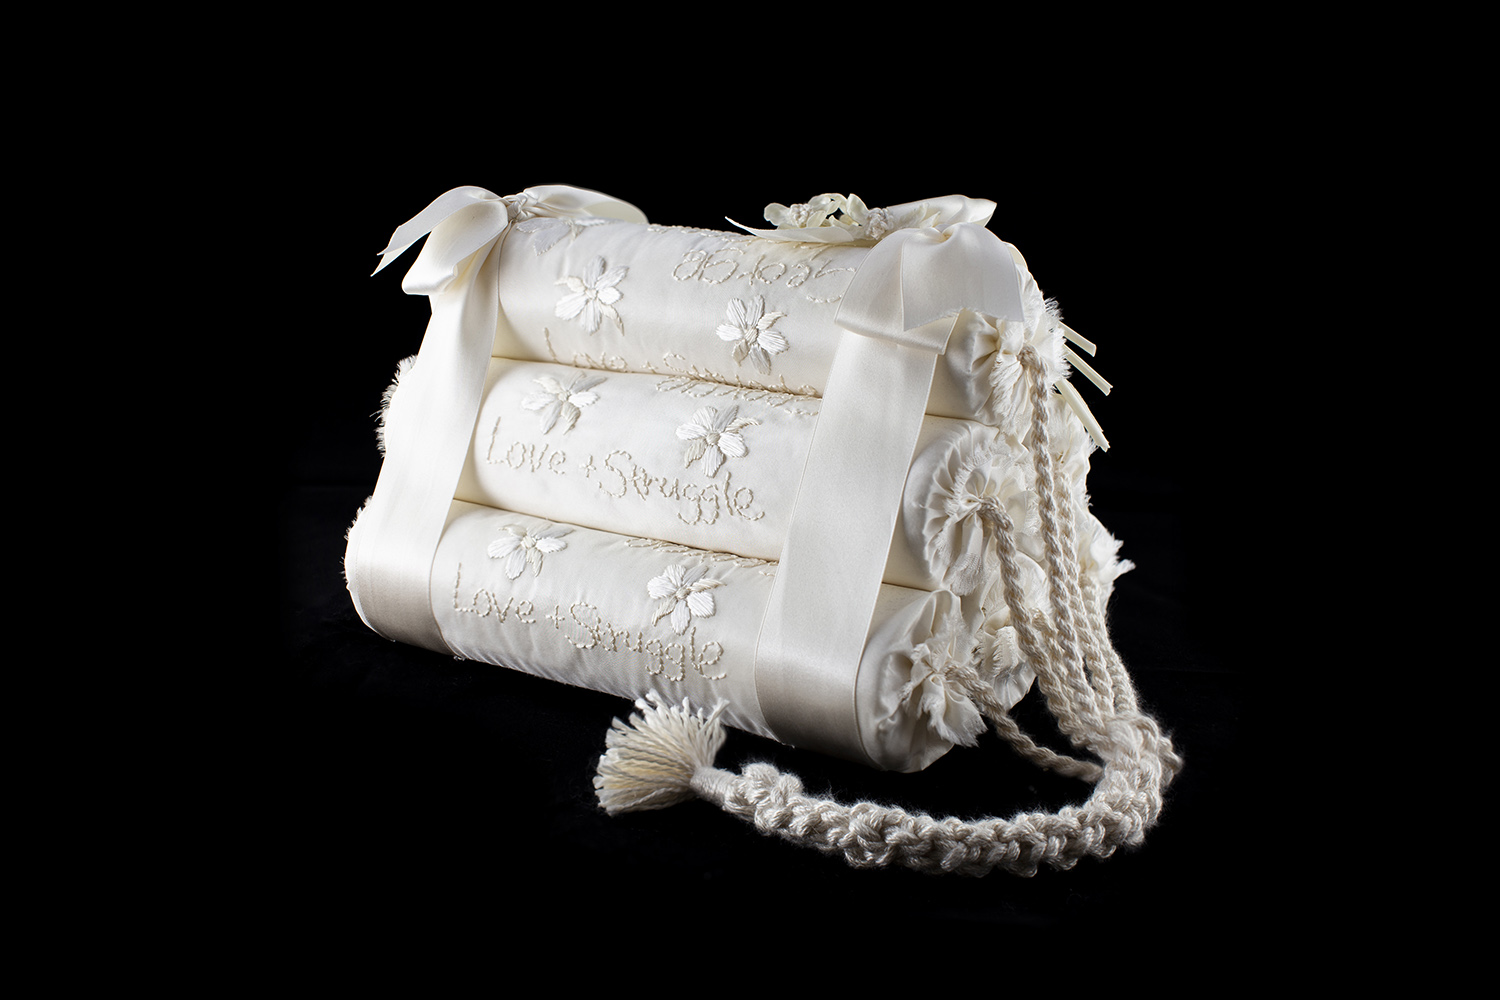 Mark Mitchell - Cracker Party, 2017, silk floss embroidery, silk taffeta, cotton buckram and reed, 9 by 6 by 6 inches (not including fuse)